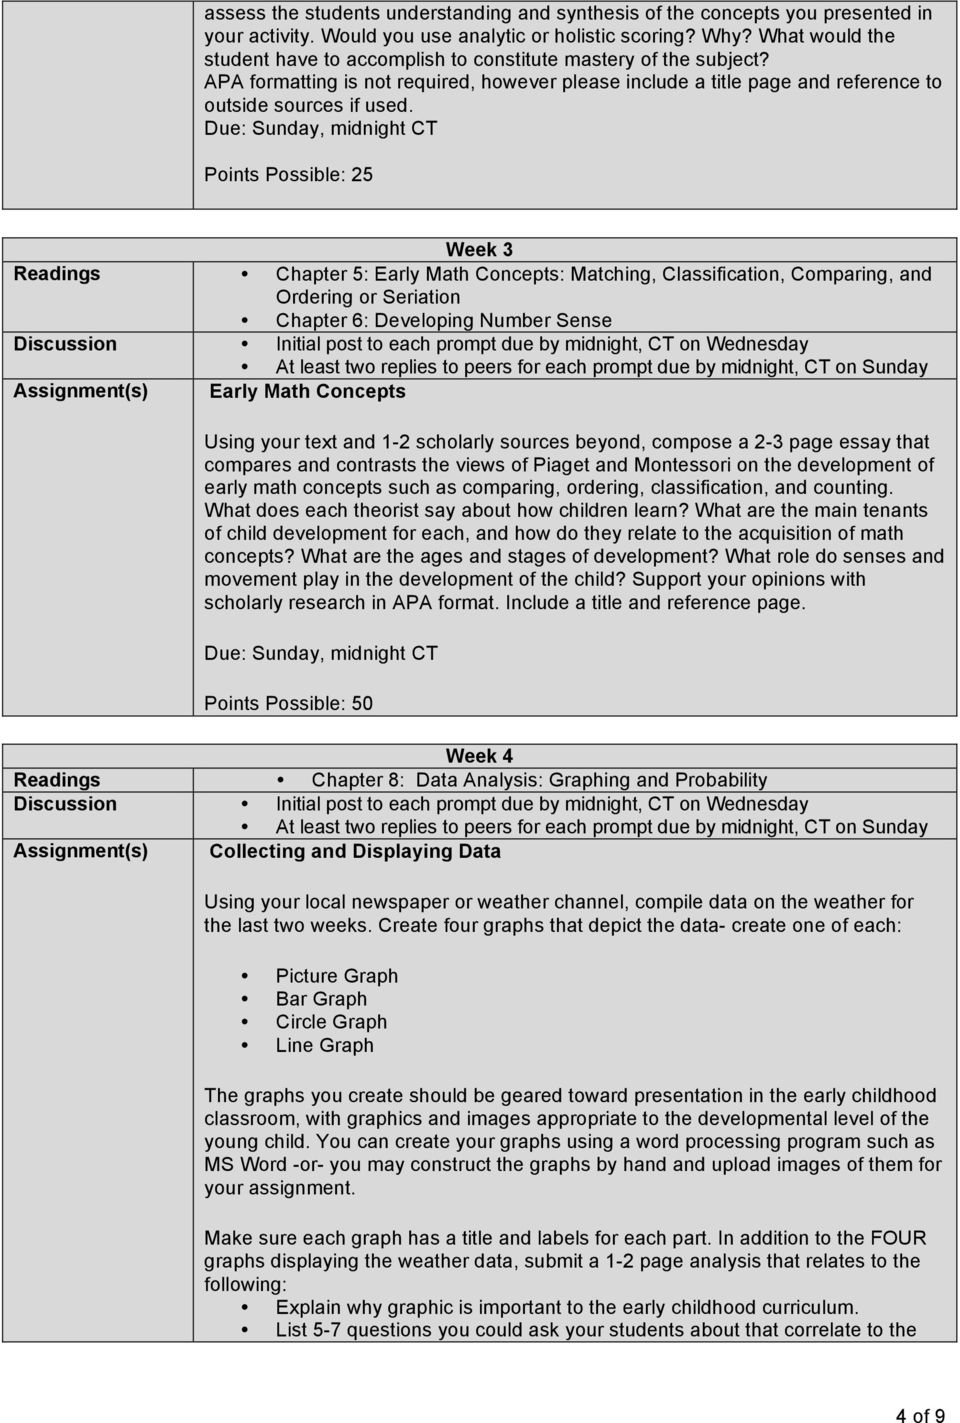 Points Possible: 25 Week 3 Readings Chapter 5: Early Math Concepts: Matching, Classification, Comparing, and Ordering or Seriation Chapter 6: Developing Number Sense Assignment(s) Early Math Concepts